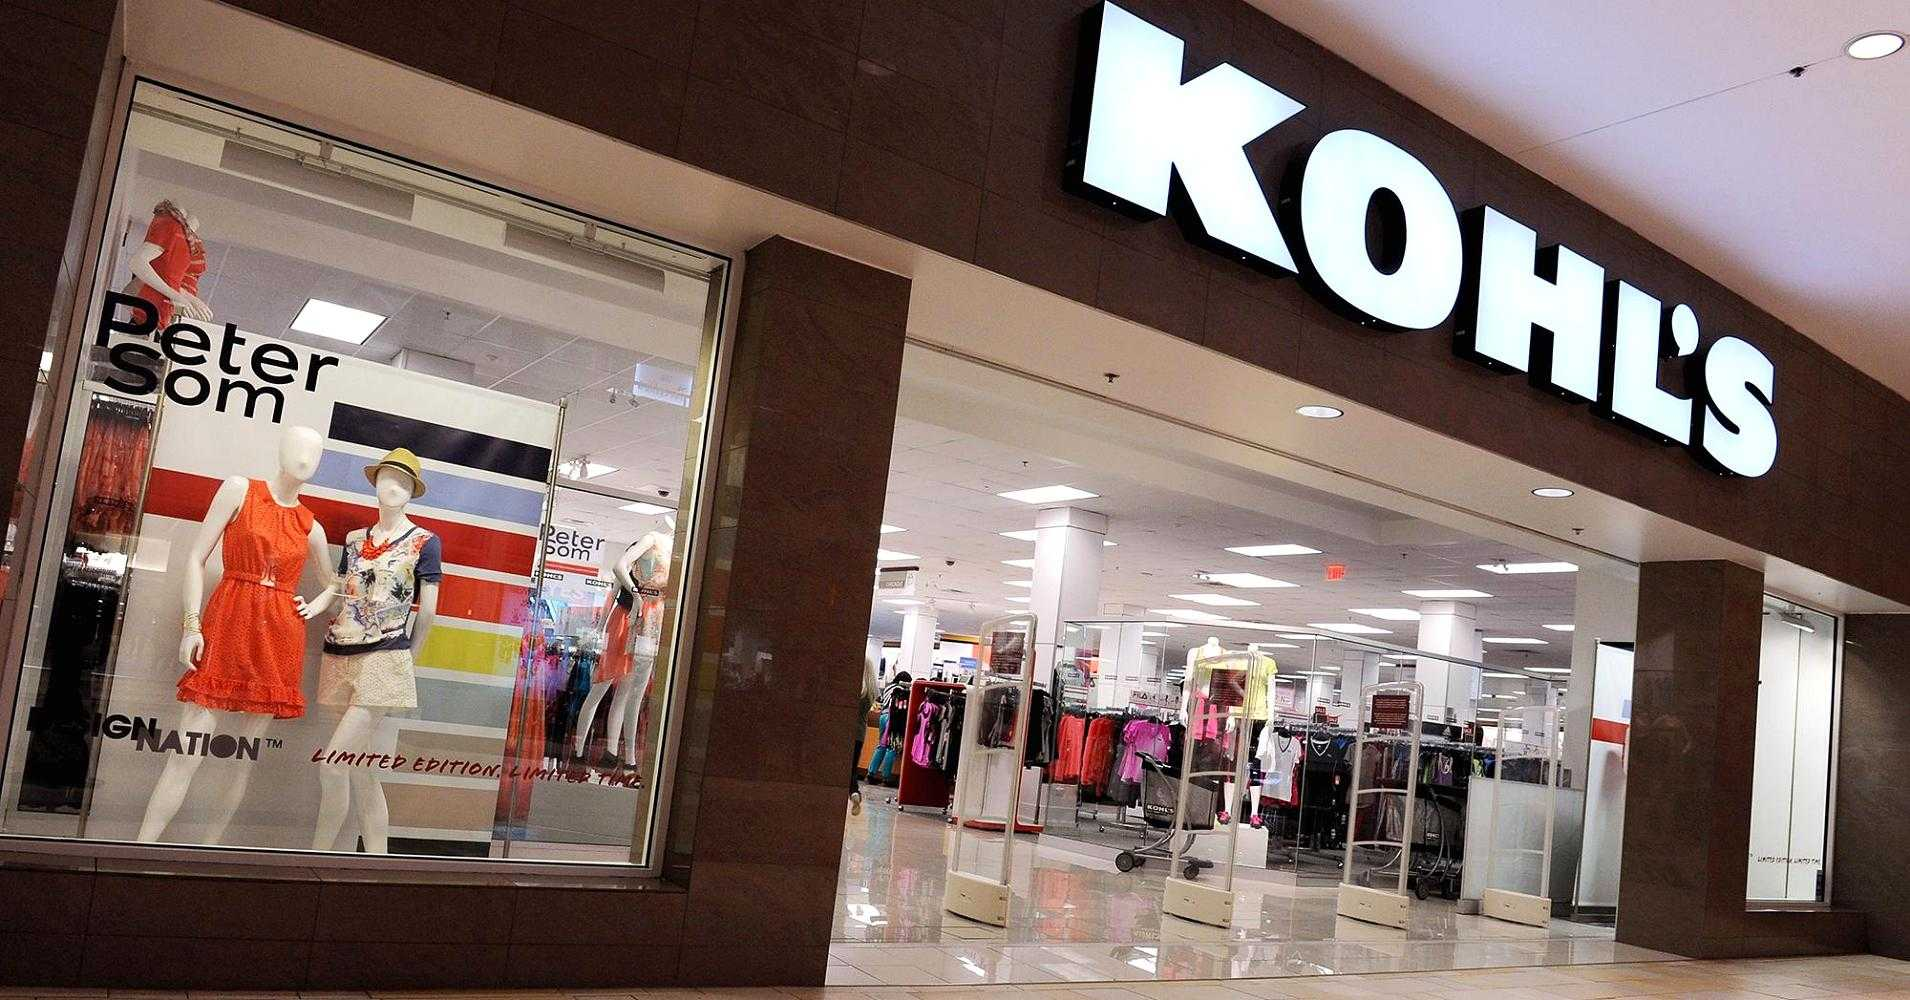 kohls near me, kohl's locations near me